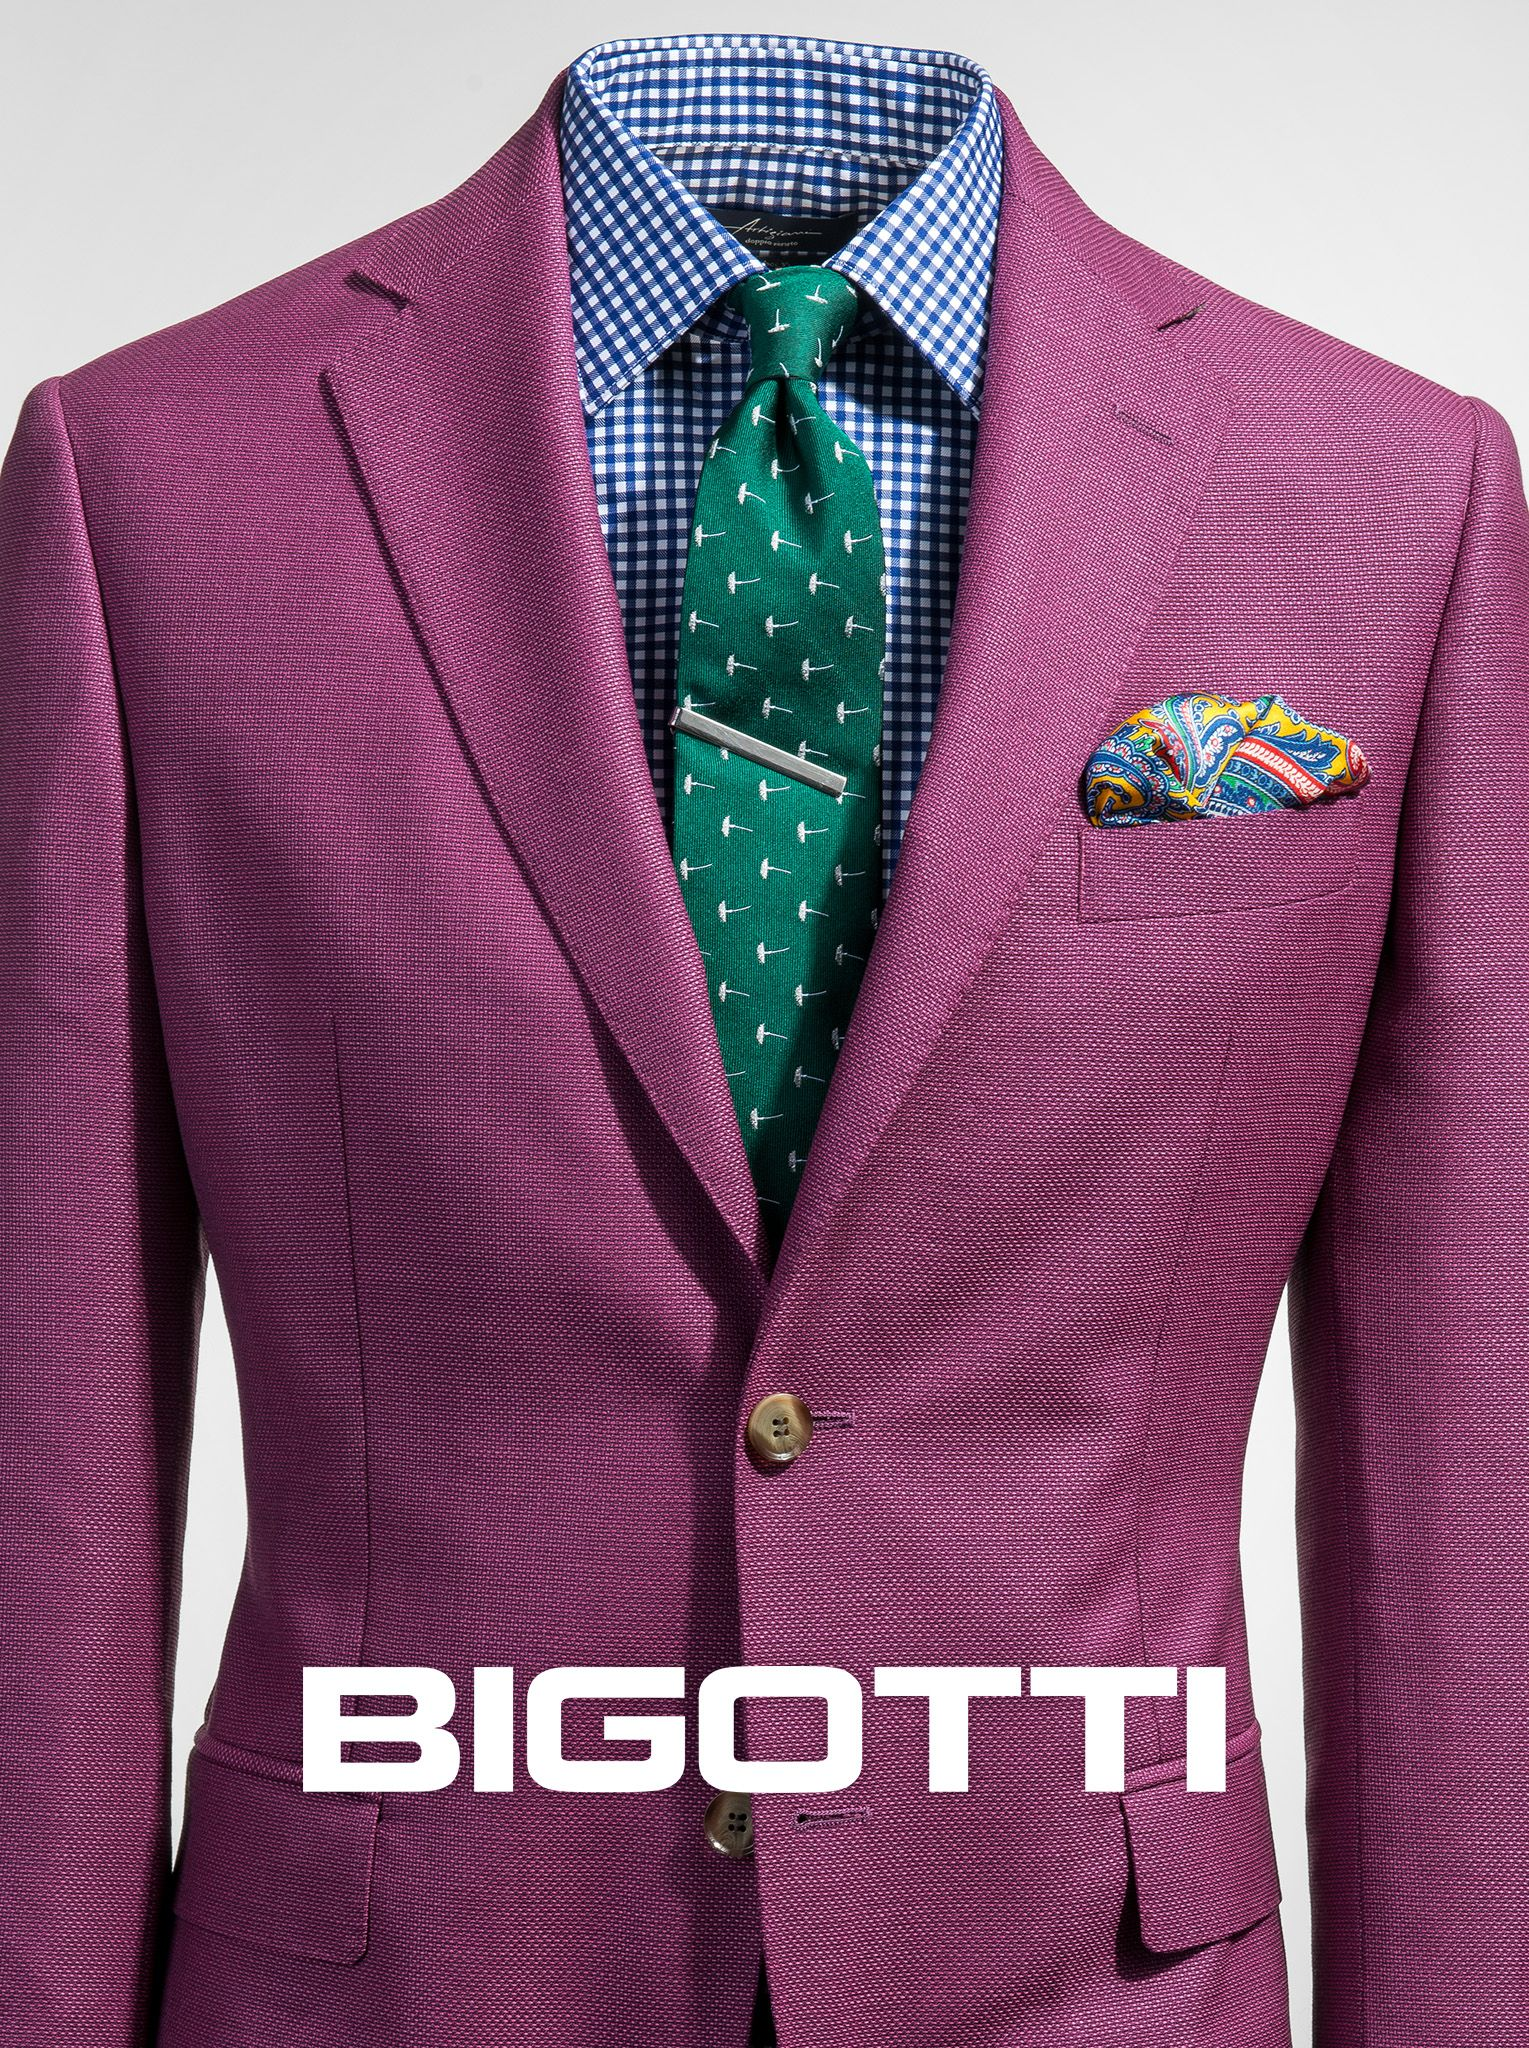 #Nuova #collezione #Mix and #match #surprising #prints and #colors #Browse and #shop in #Bigotti #men #clothing #stores and on https://www.bigotti.ro/noua-colectie#42